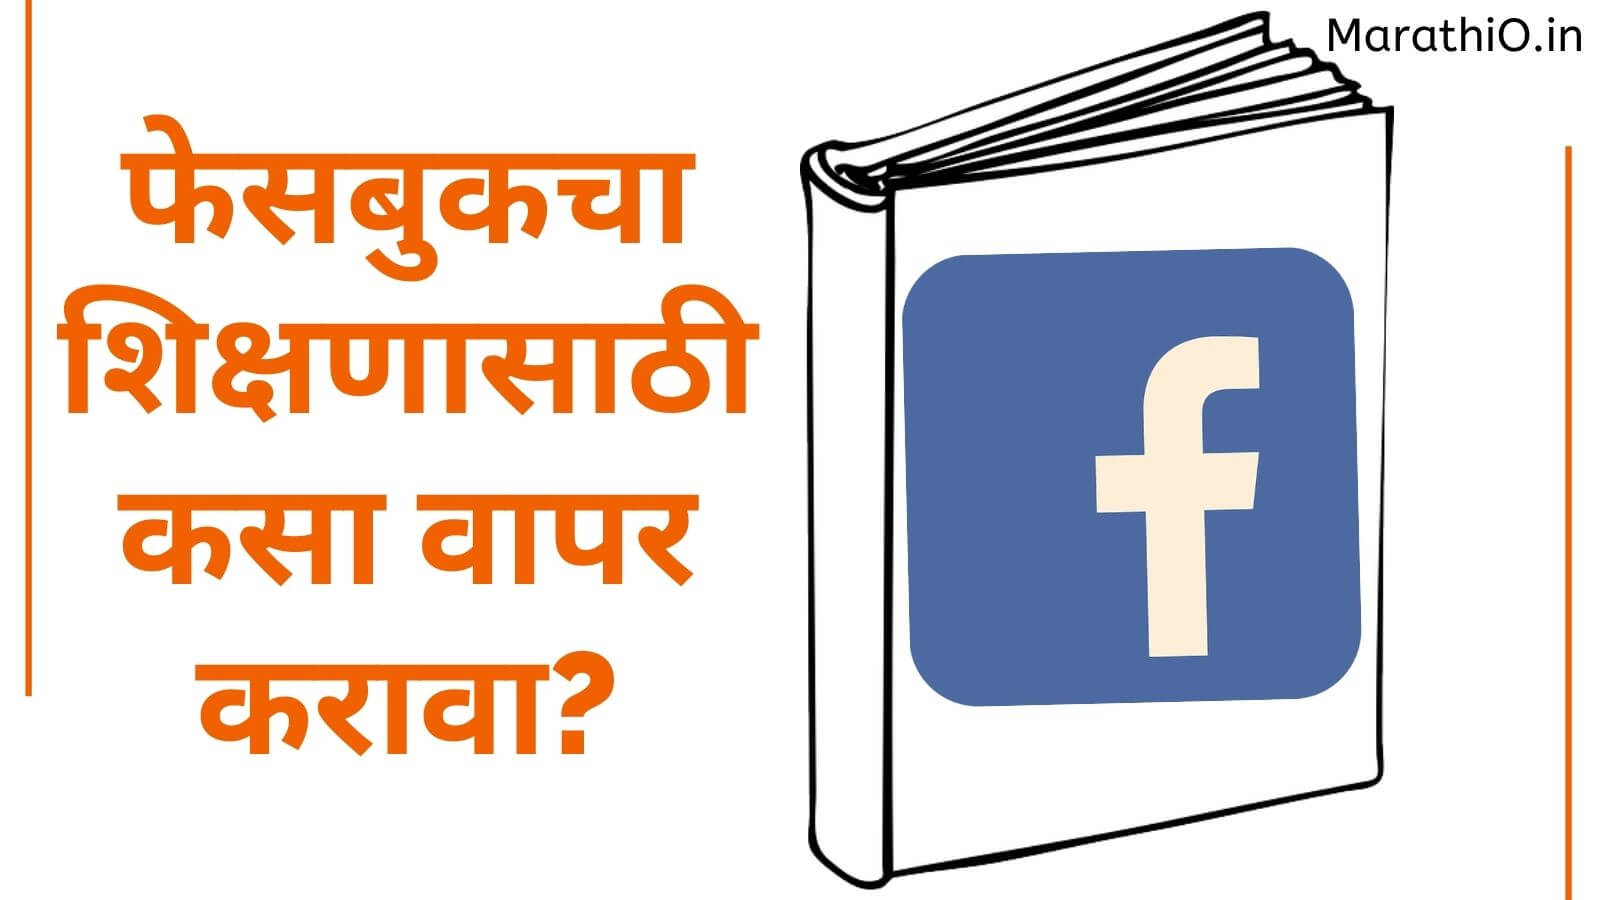 How To Use Facebook For Education In Marathi